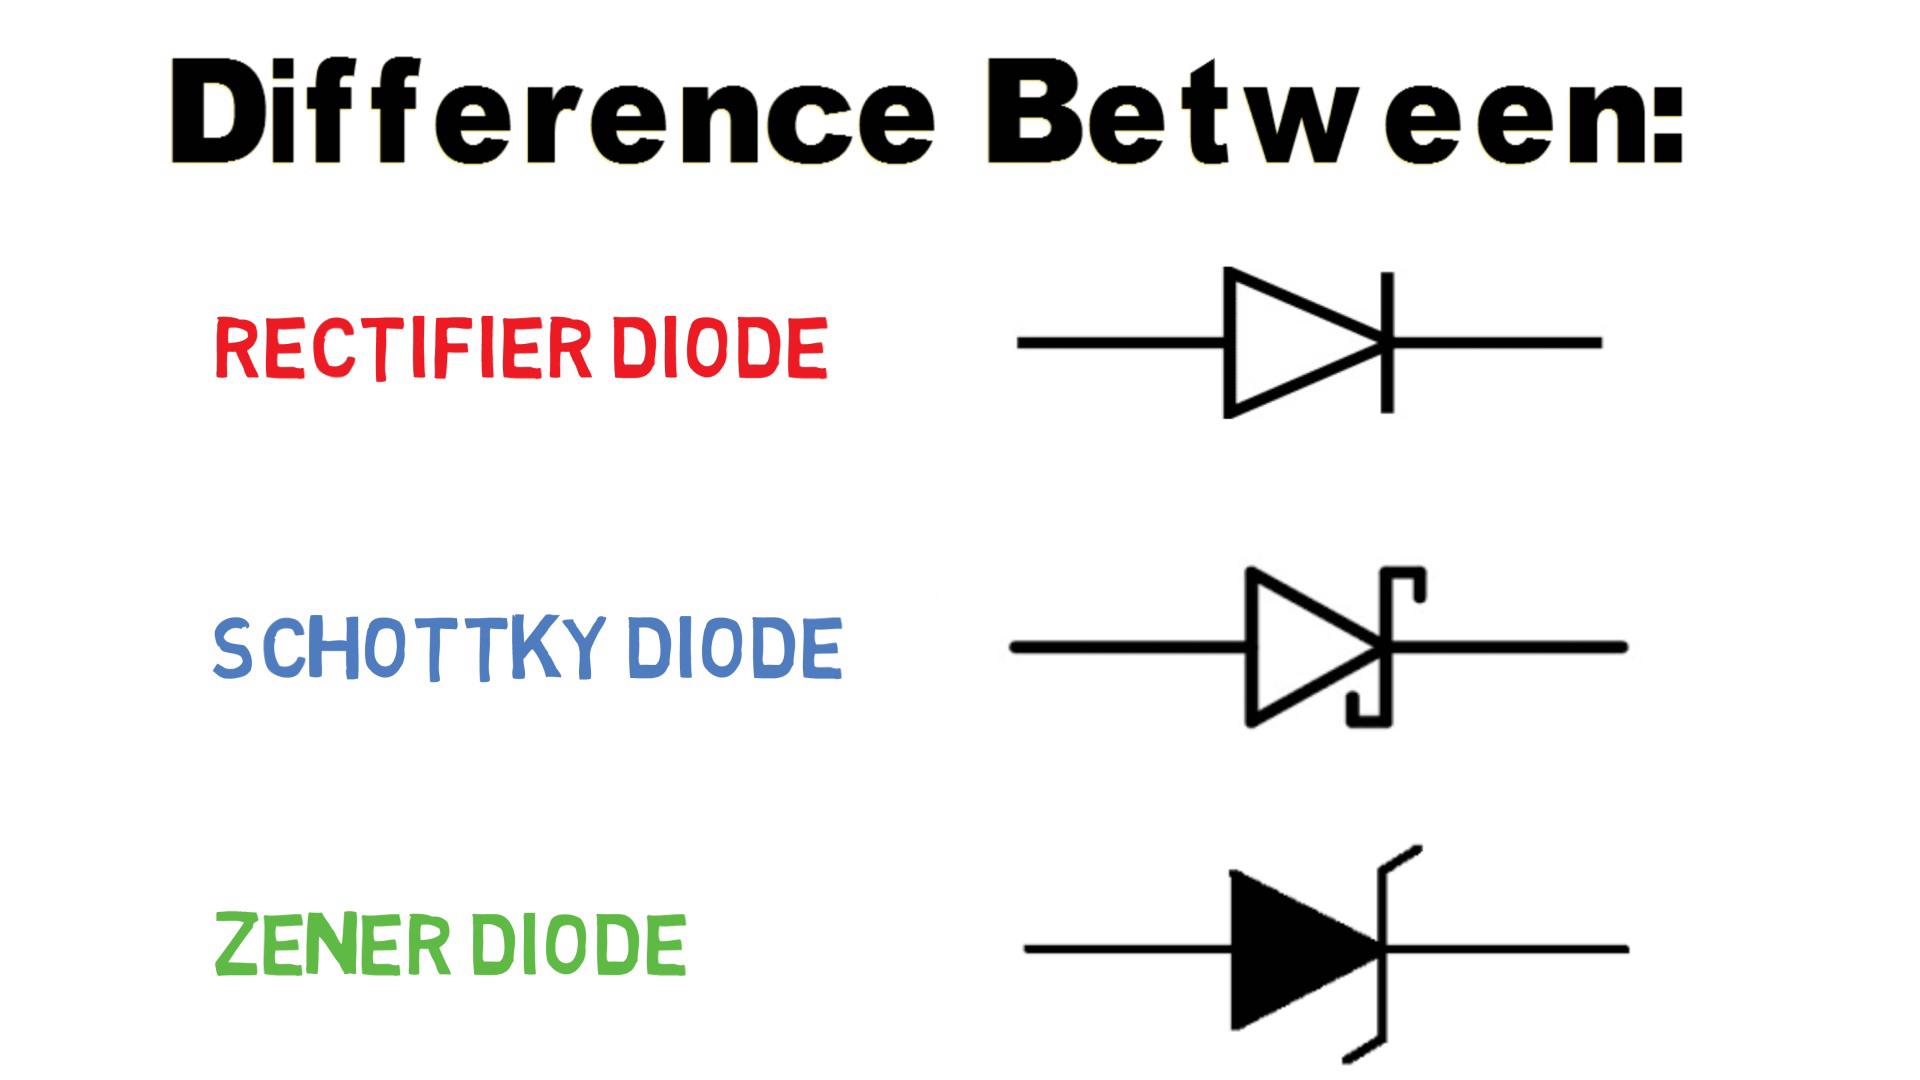 Difference Between Diode Zener And Schottky Notes Details Of The Full Wave Rectifier Circuit Often A Is Passive Device Which Allows Flow Current In One Direction Only But Since There Are So Many Types How To Differentiate